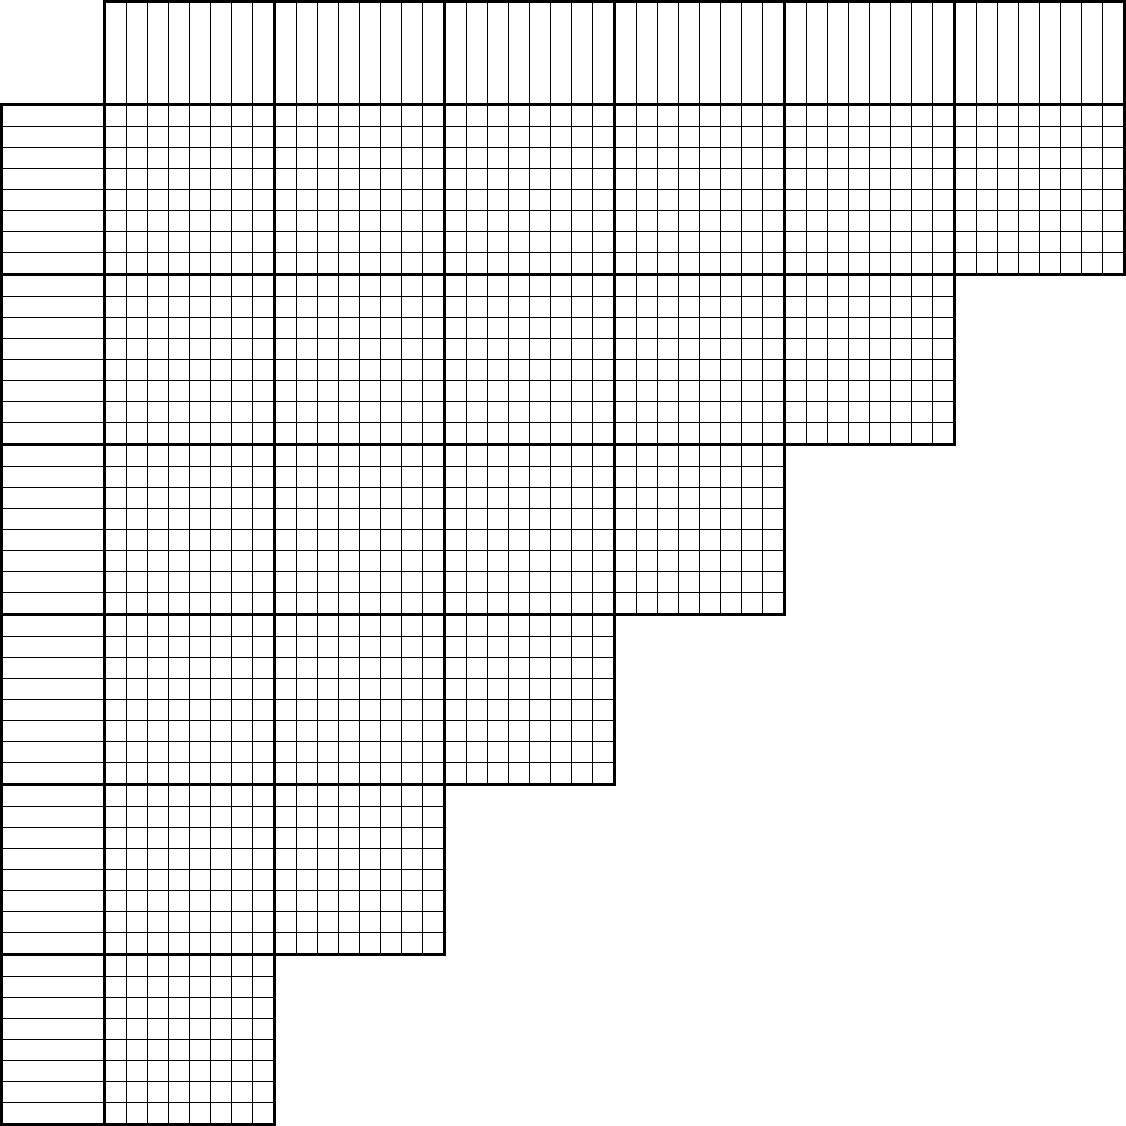 worksheet Printable Grids tlstyer com logic puzzle grids grids